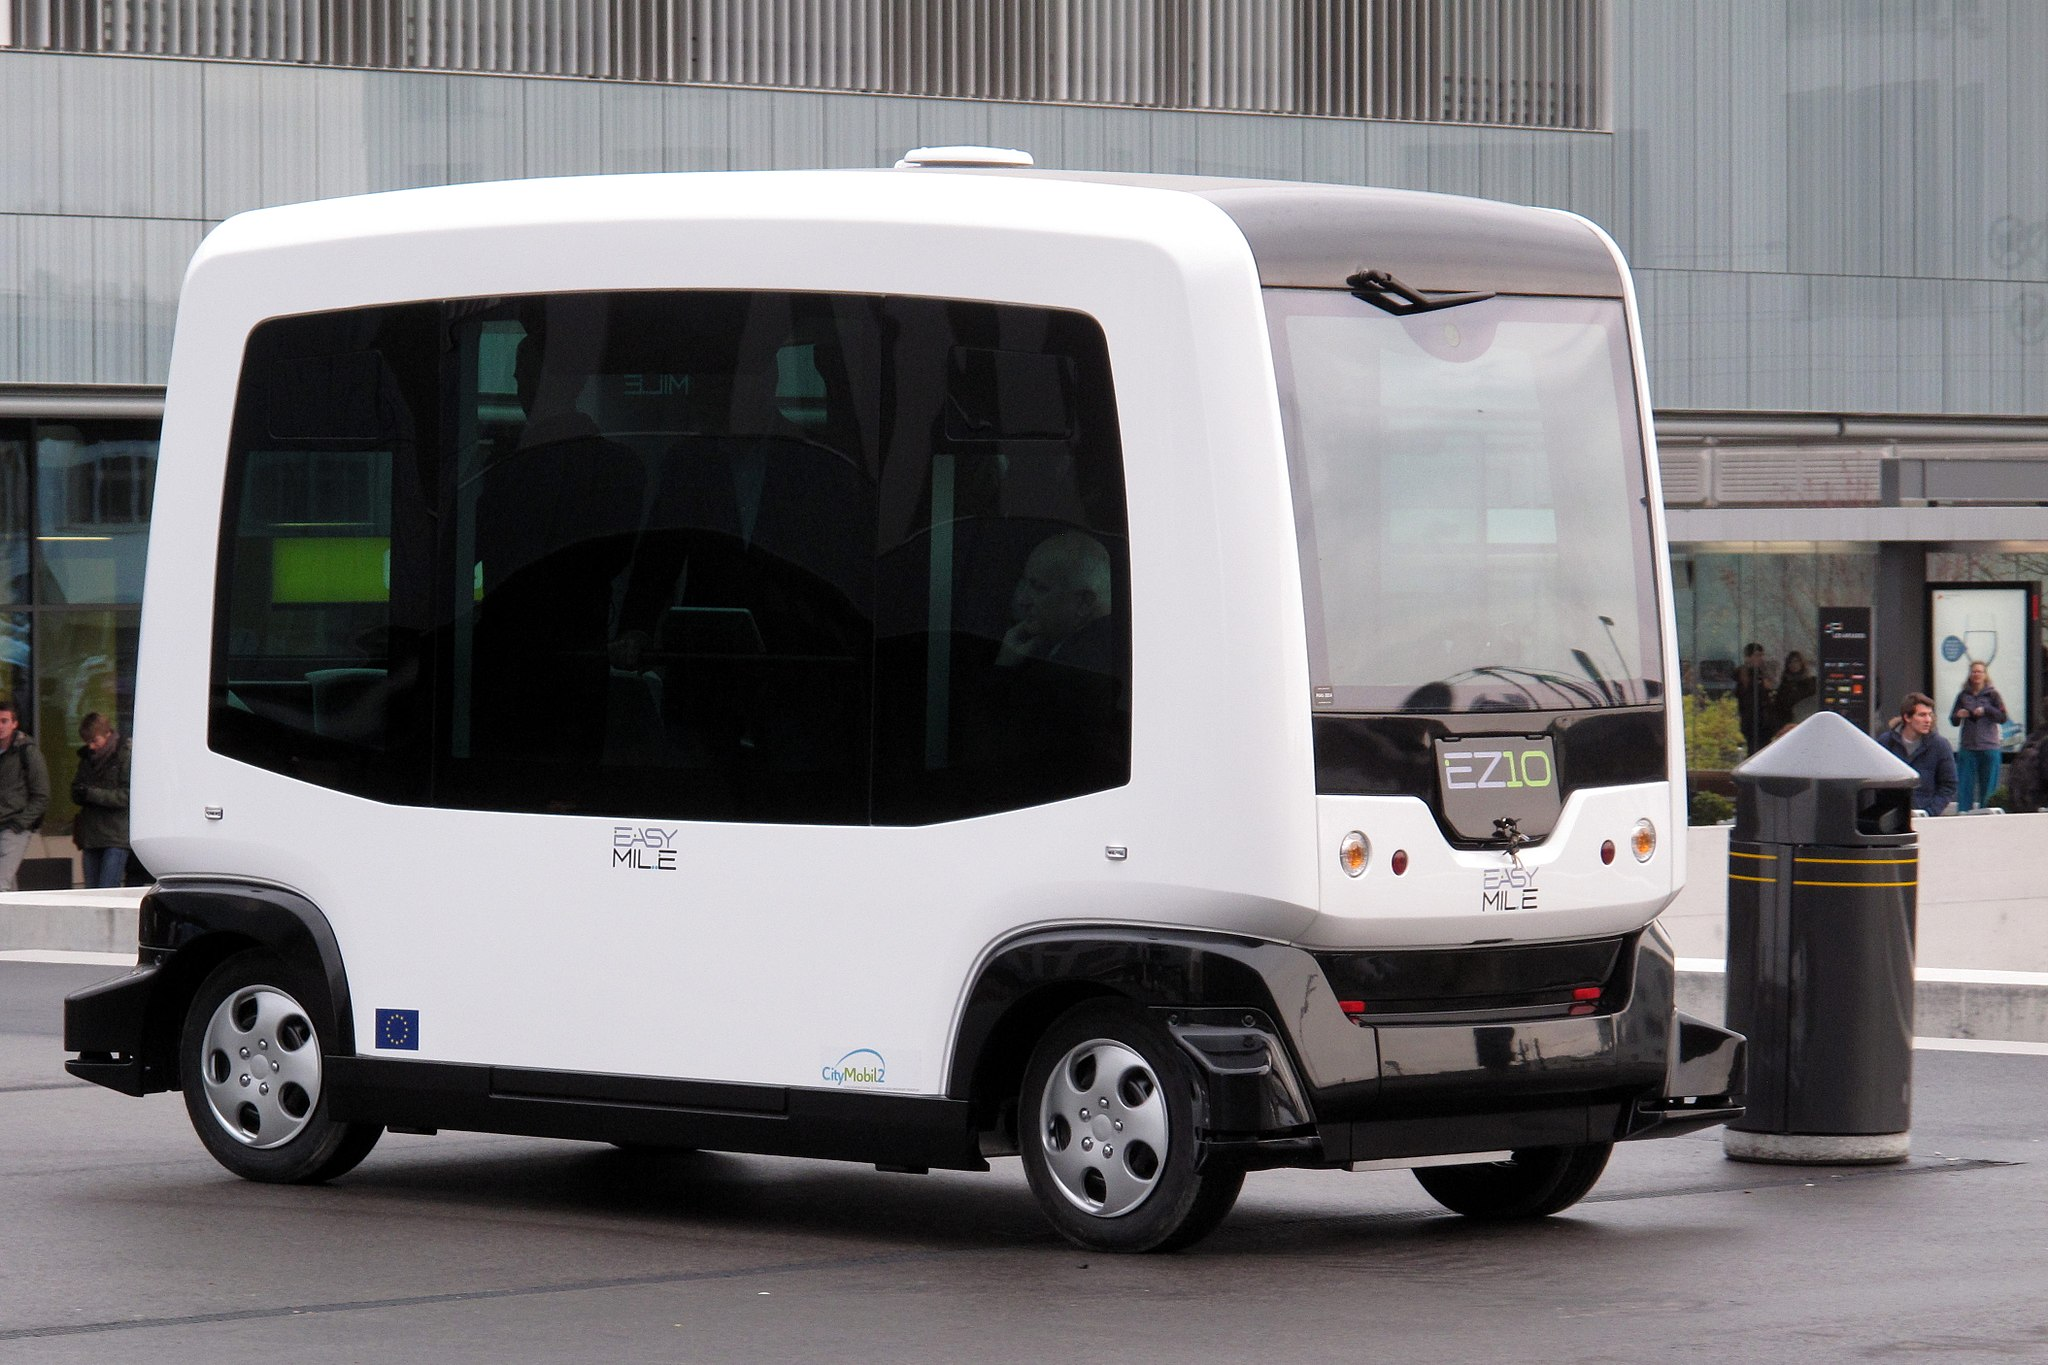 The Race to the Road: Autonomous Shuttles vs. Driverless Cars